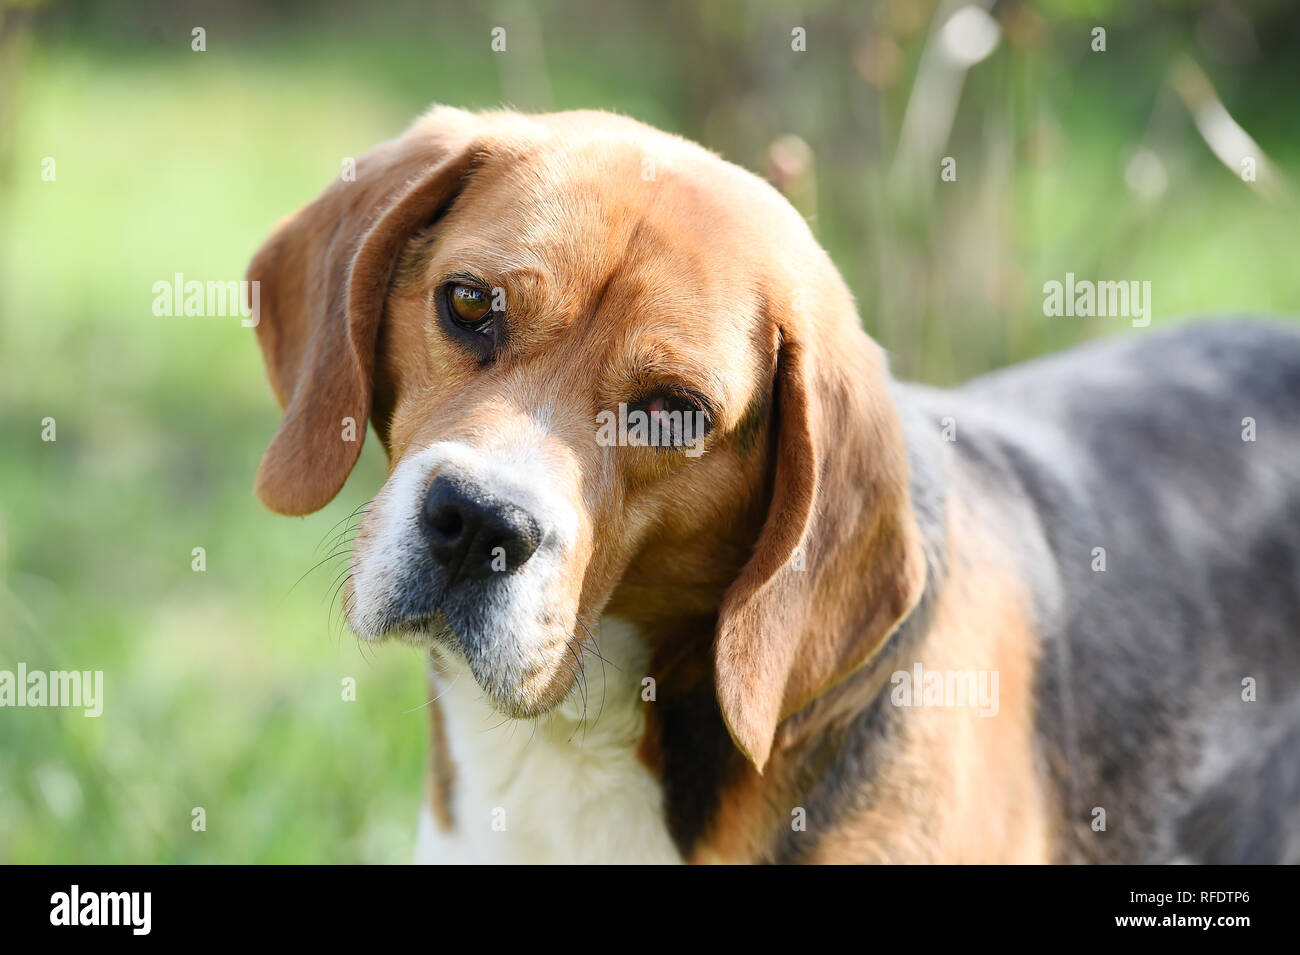 Companion or friend and friendship concept. Beagle walk on fresh air. Dog with long ears on summer outdoor. Cute pet on sunny day. Hunting and detection dog. - Stock Image